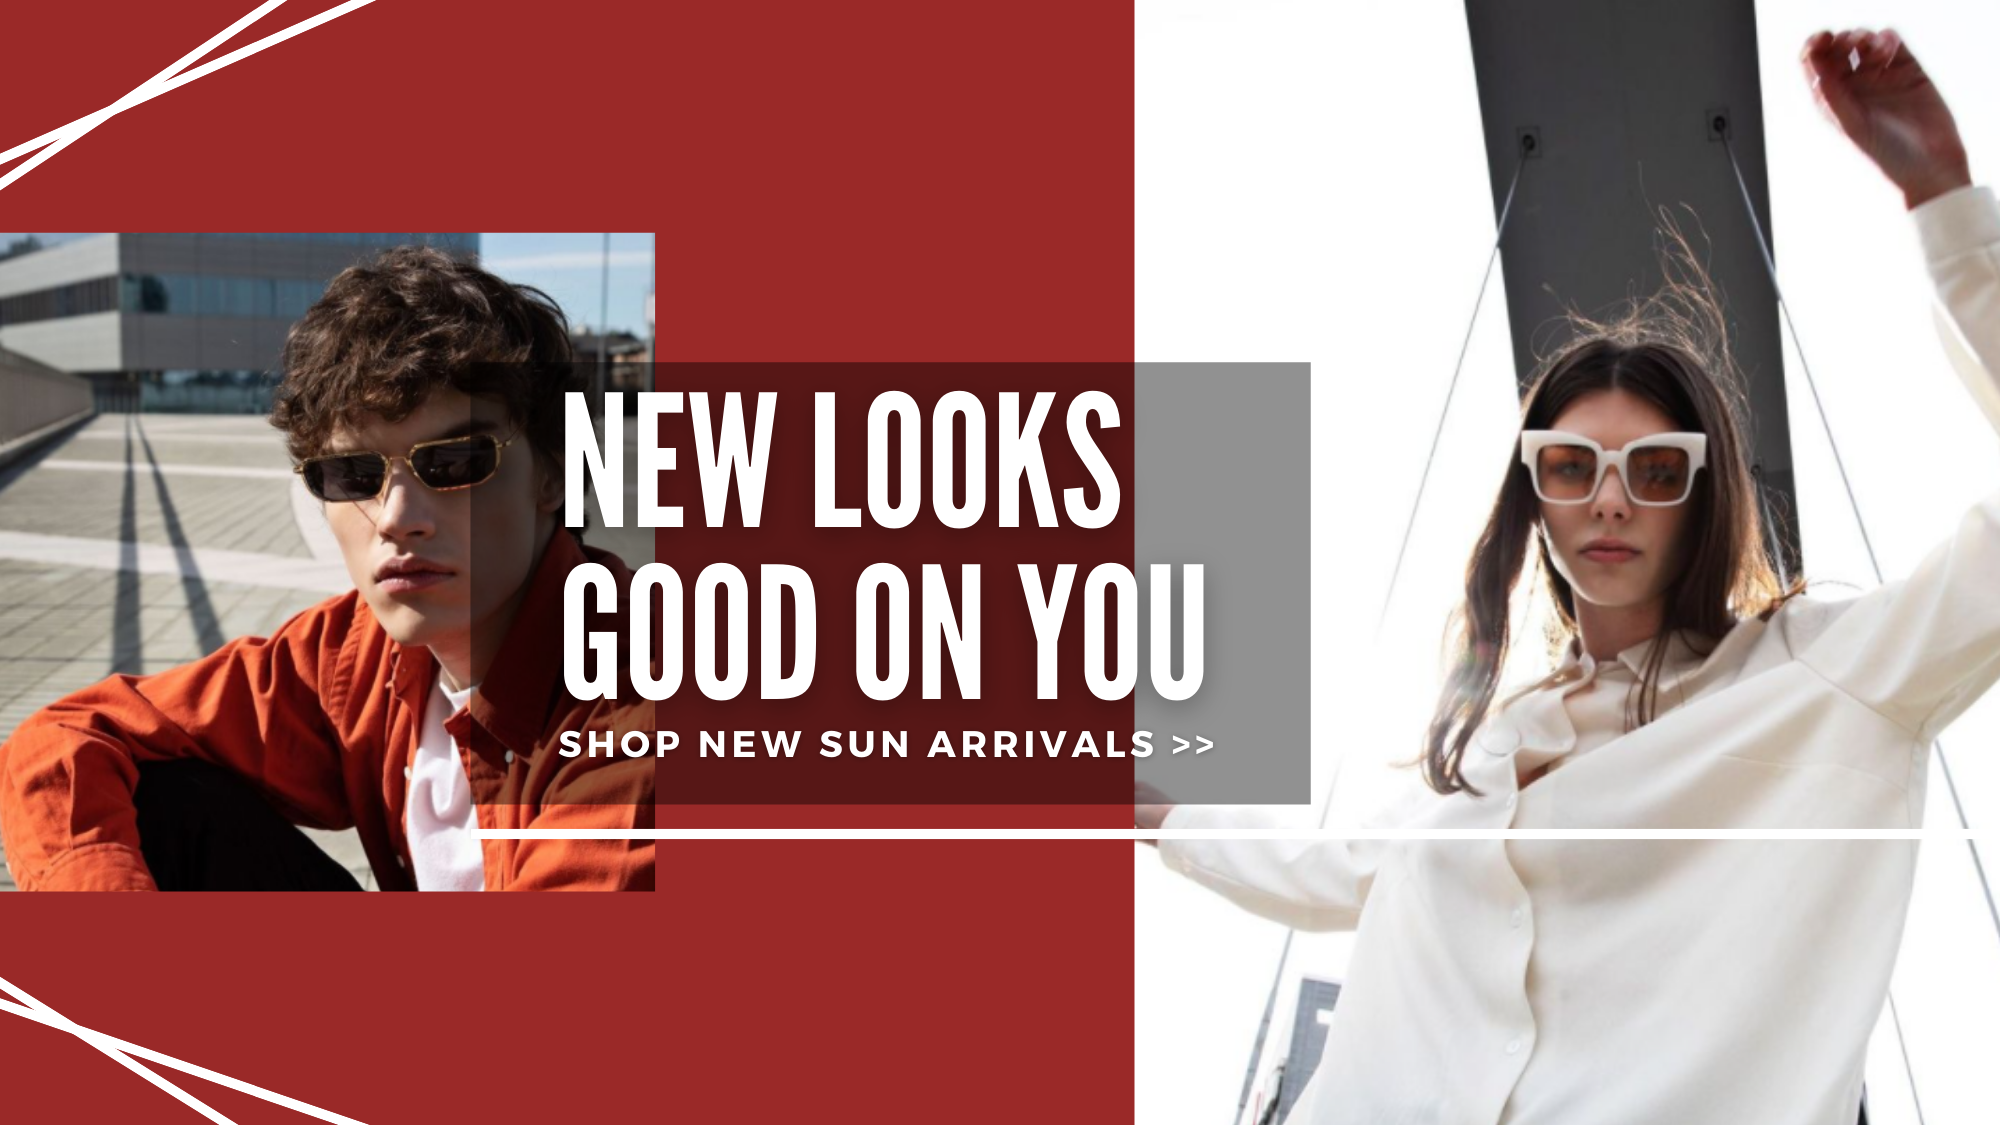 new looks good on you. shop new sun arrivals